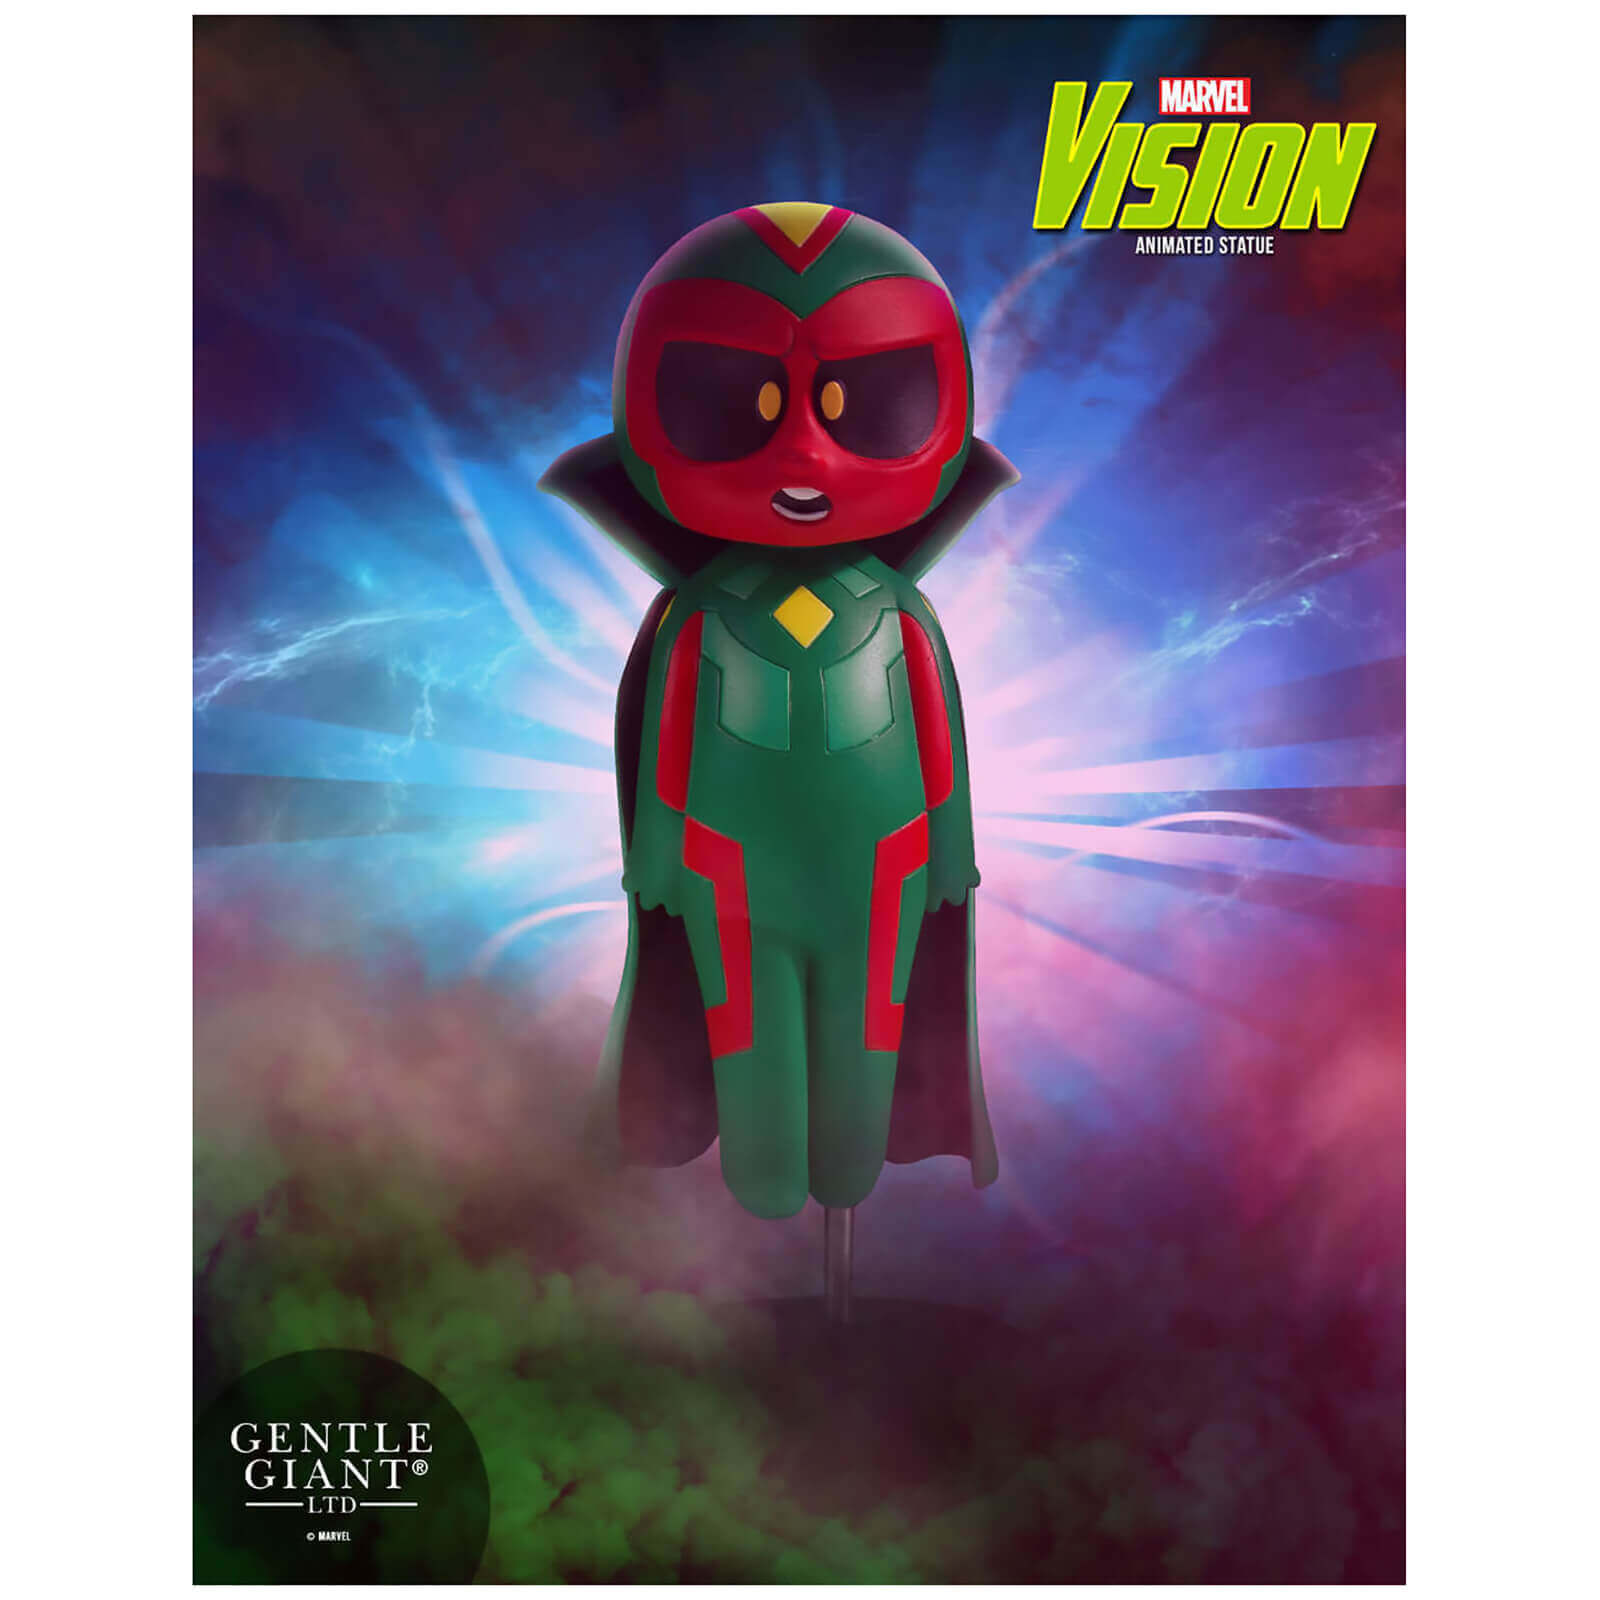 Image of Gentle Giant Marvel Avengers Vision Animated Statue - 15cm